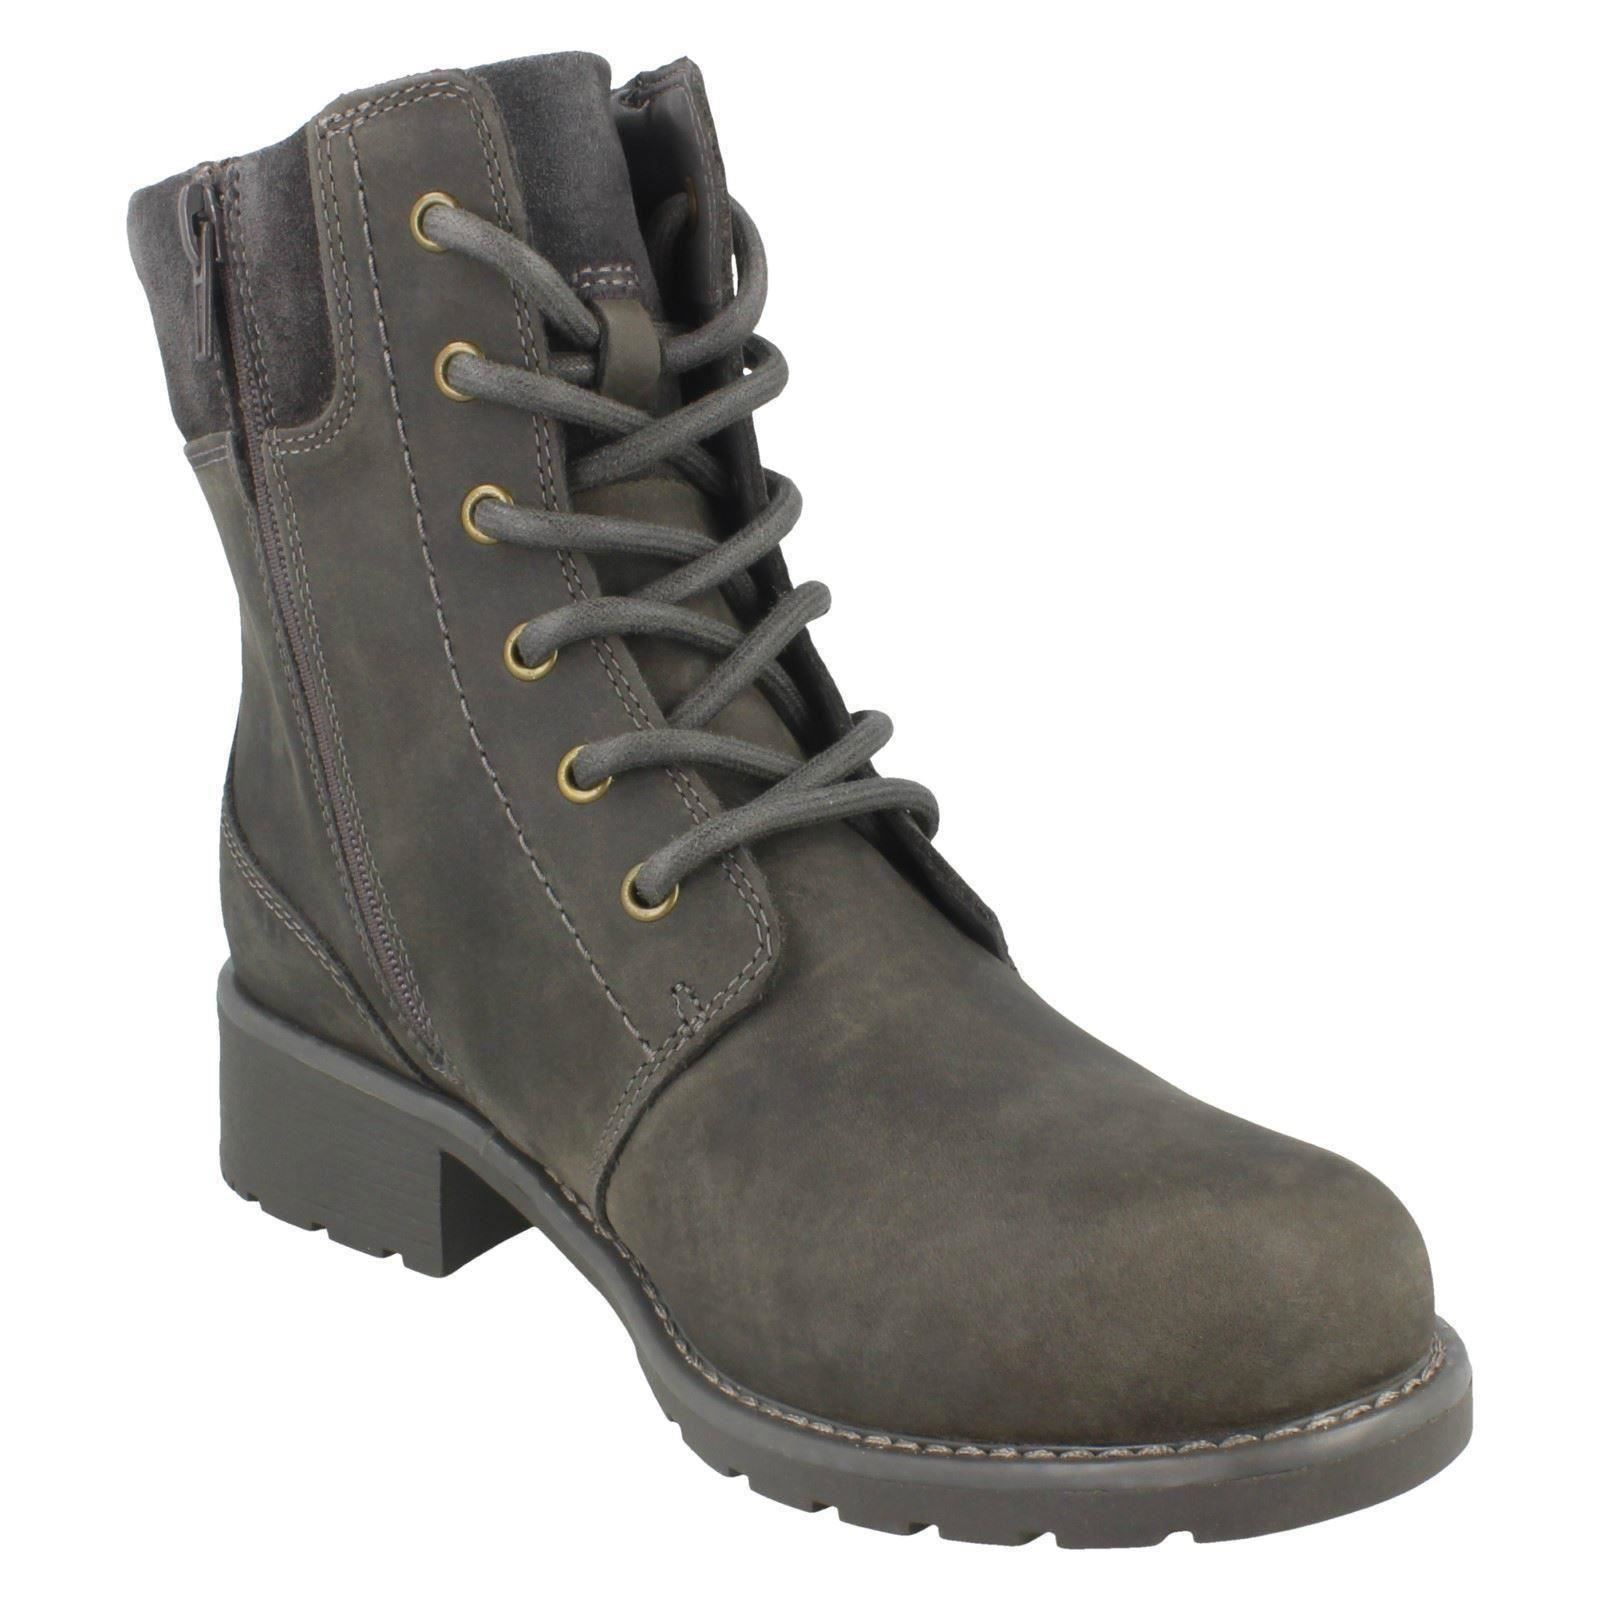 Ladies-Clarks-Casual-Lace-Up-Inside-Zip-Nubuck-Leather-Ankle-Boots-Orinoco-Spice thumbnail 44